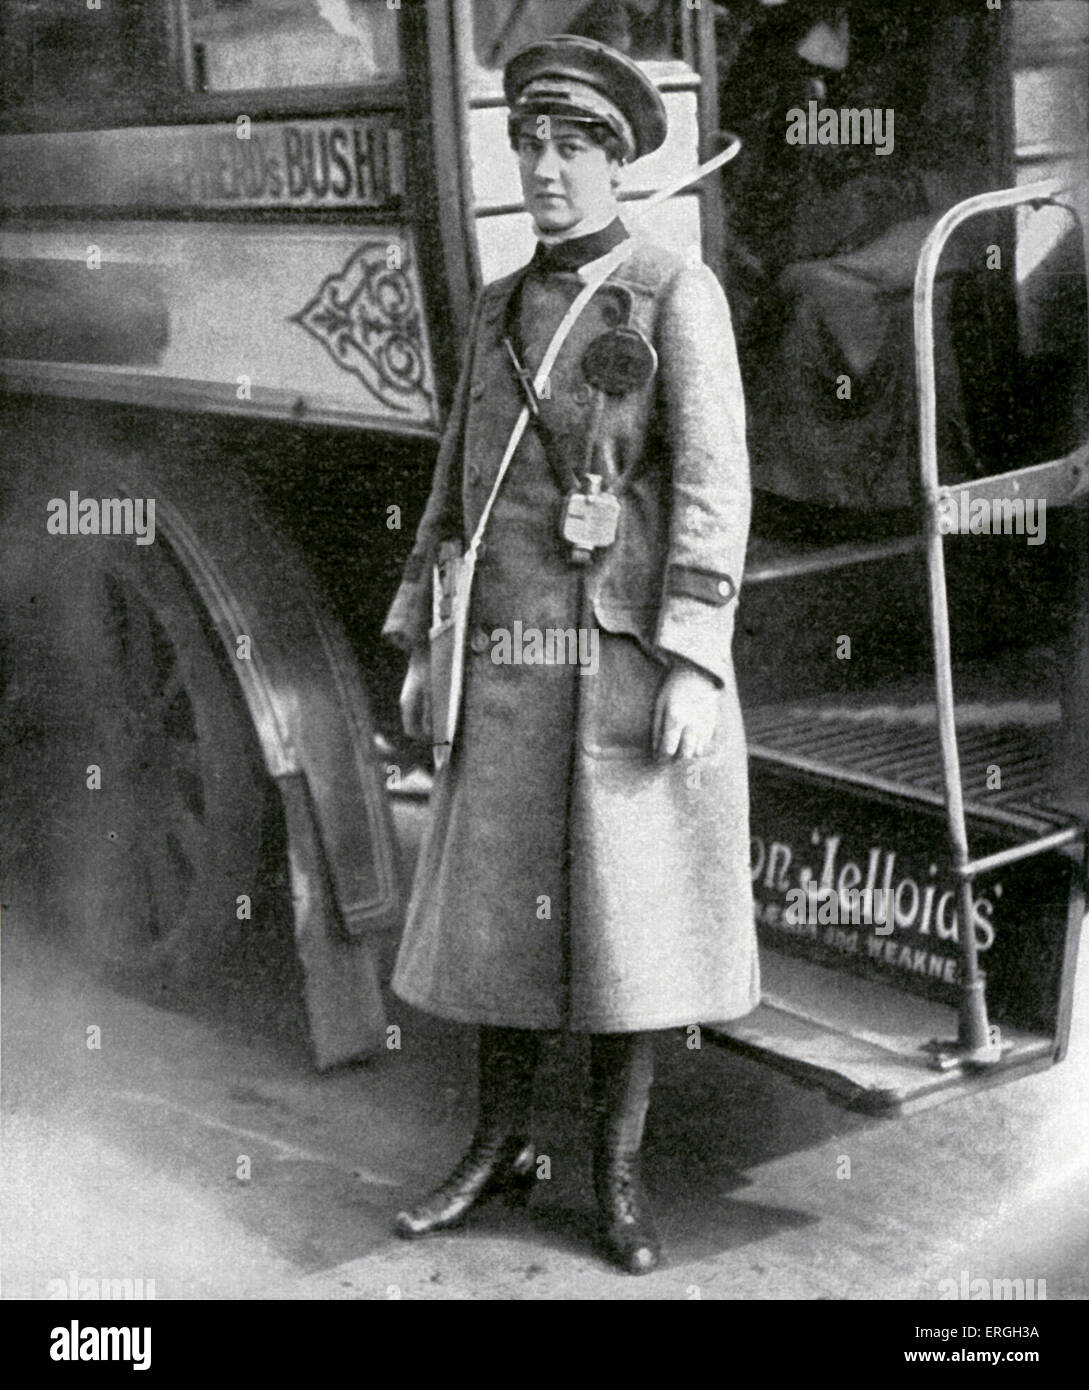 Female bus conductor during World War 1, London, UK. April 1916. - Stock Image